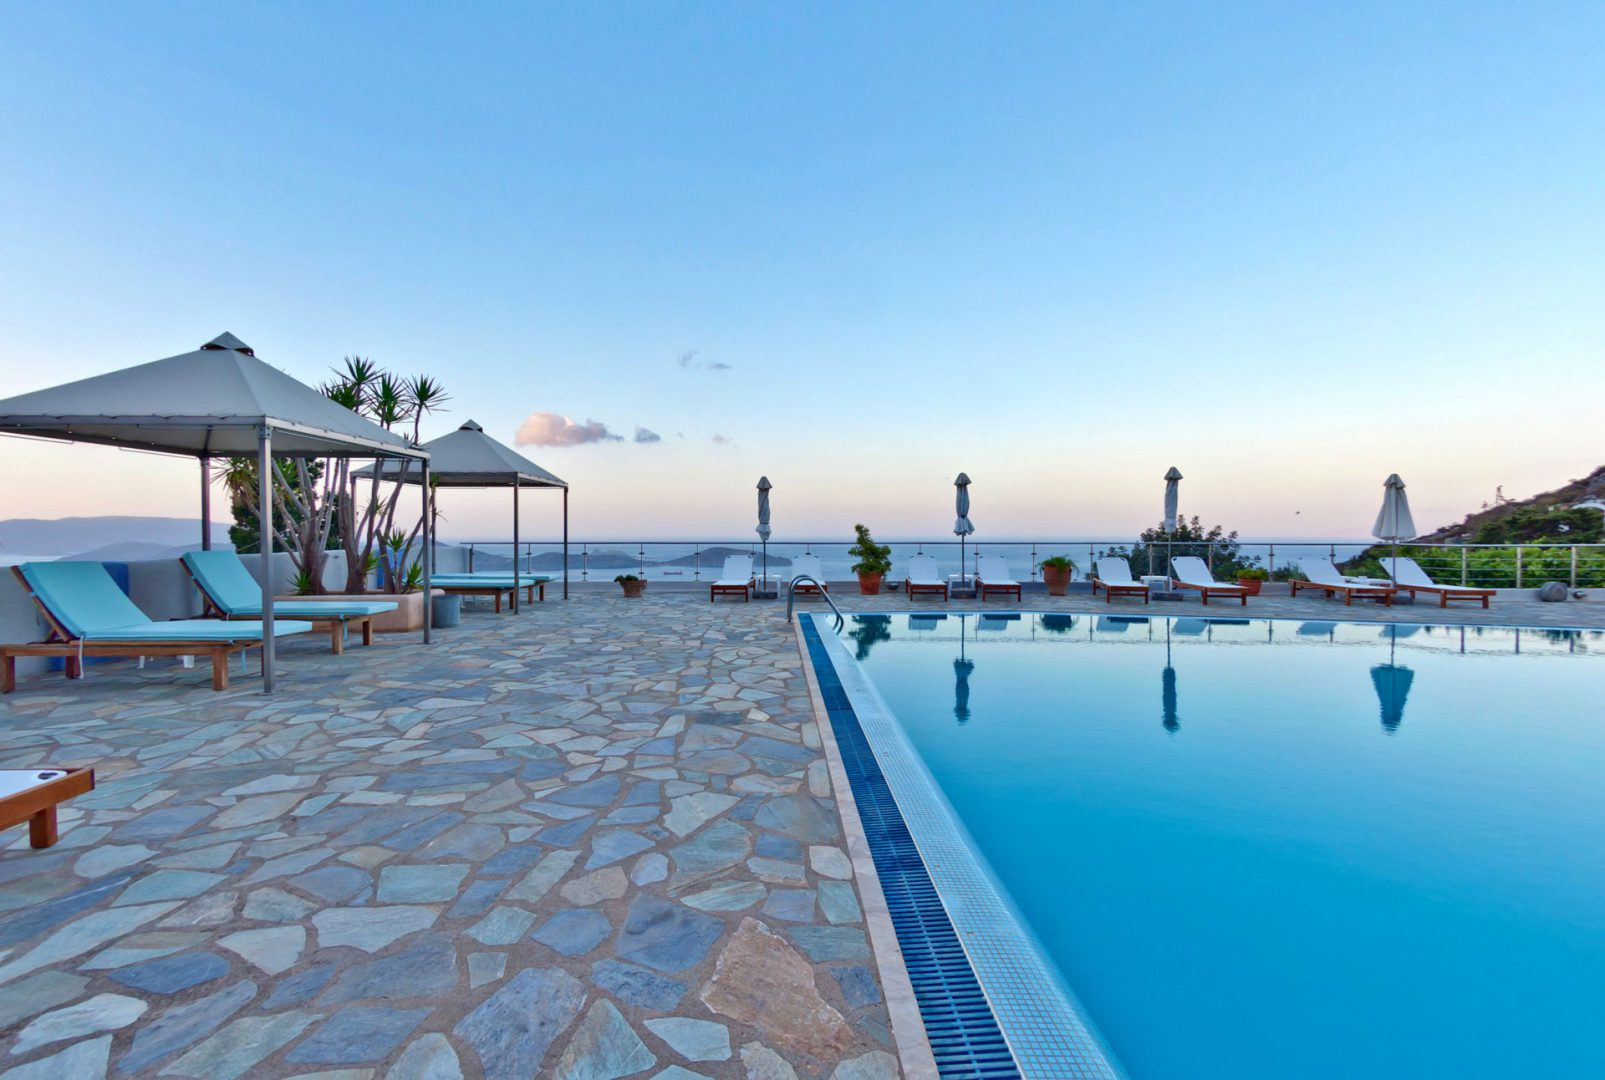 Swimming Pool Sea View - Adrakos Apartments Elounda 02